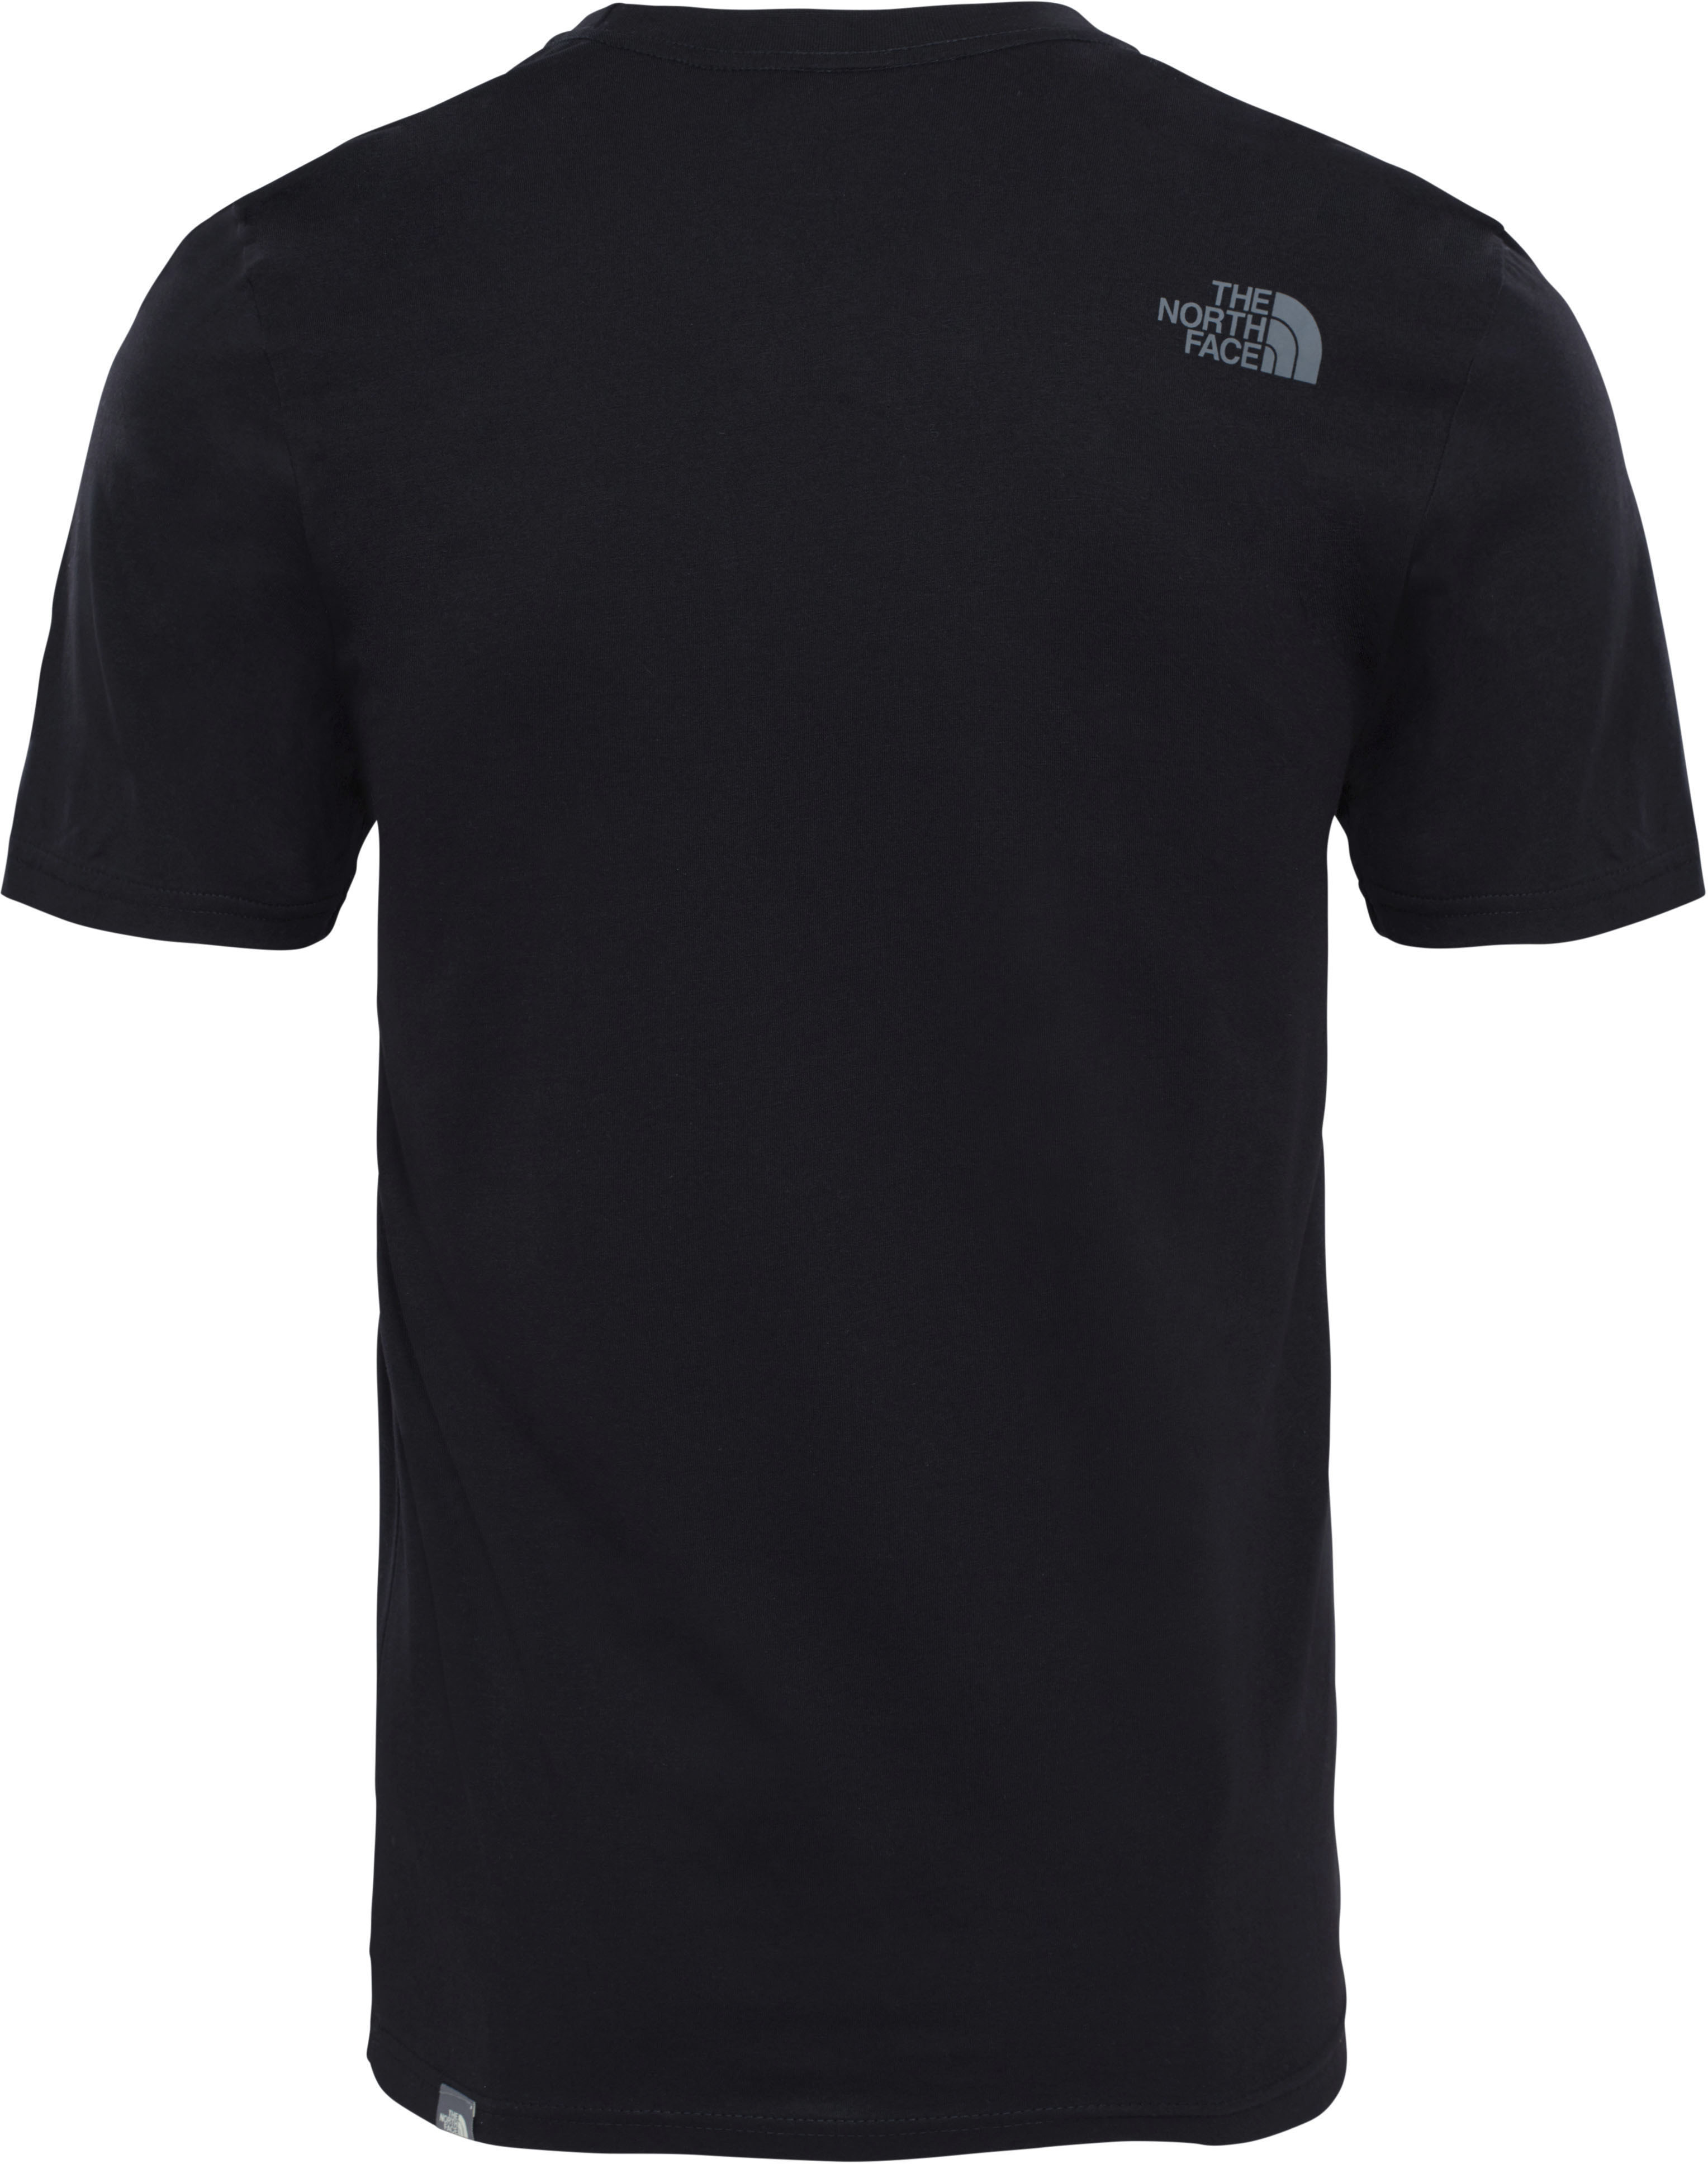 the north face -  T-Shirt EASY TEE